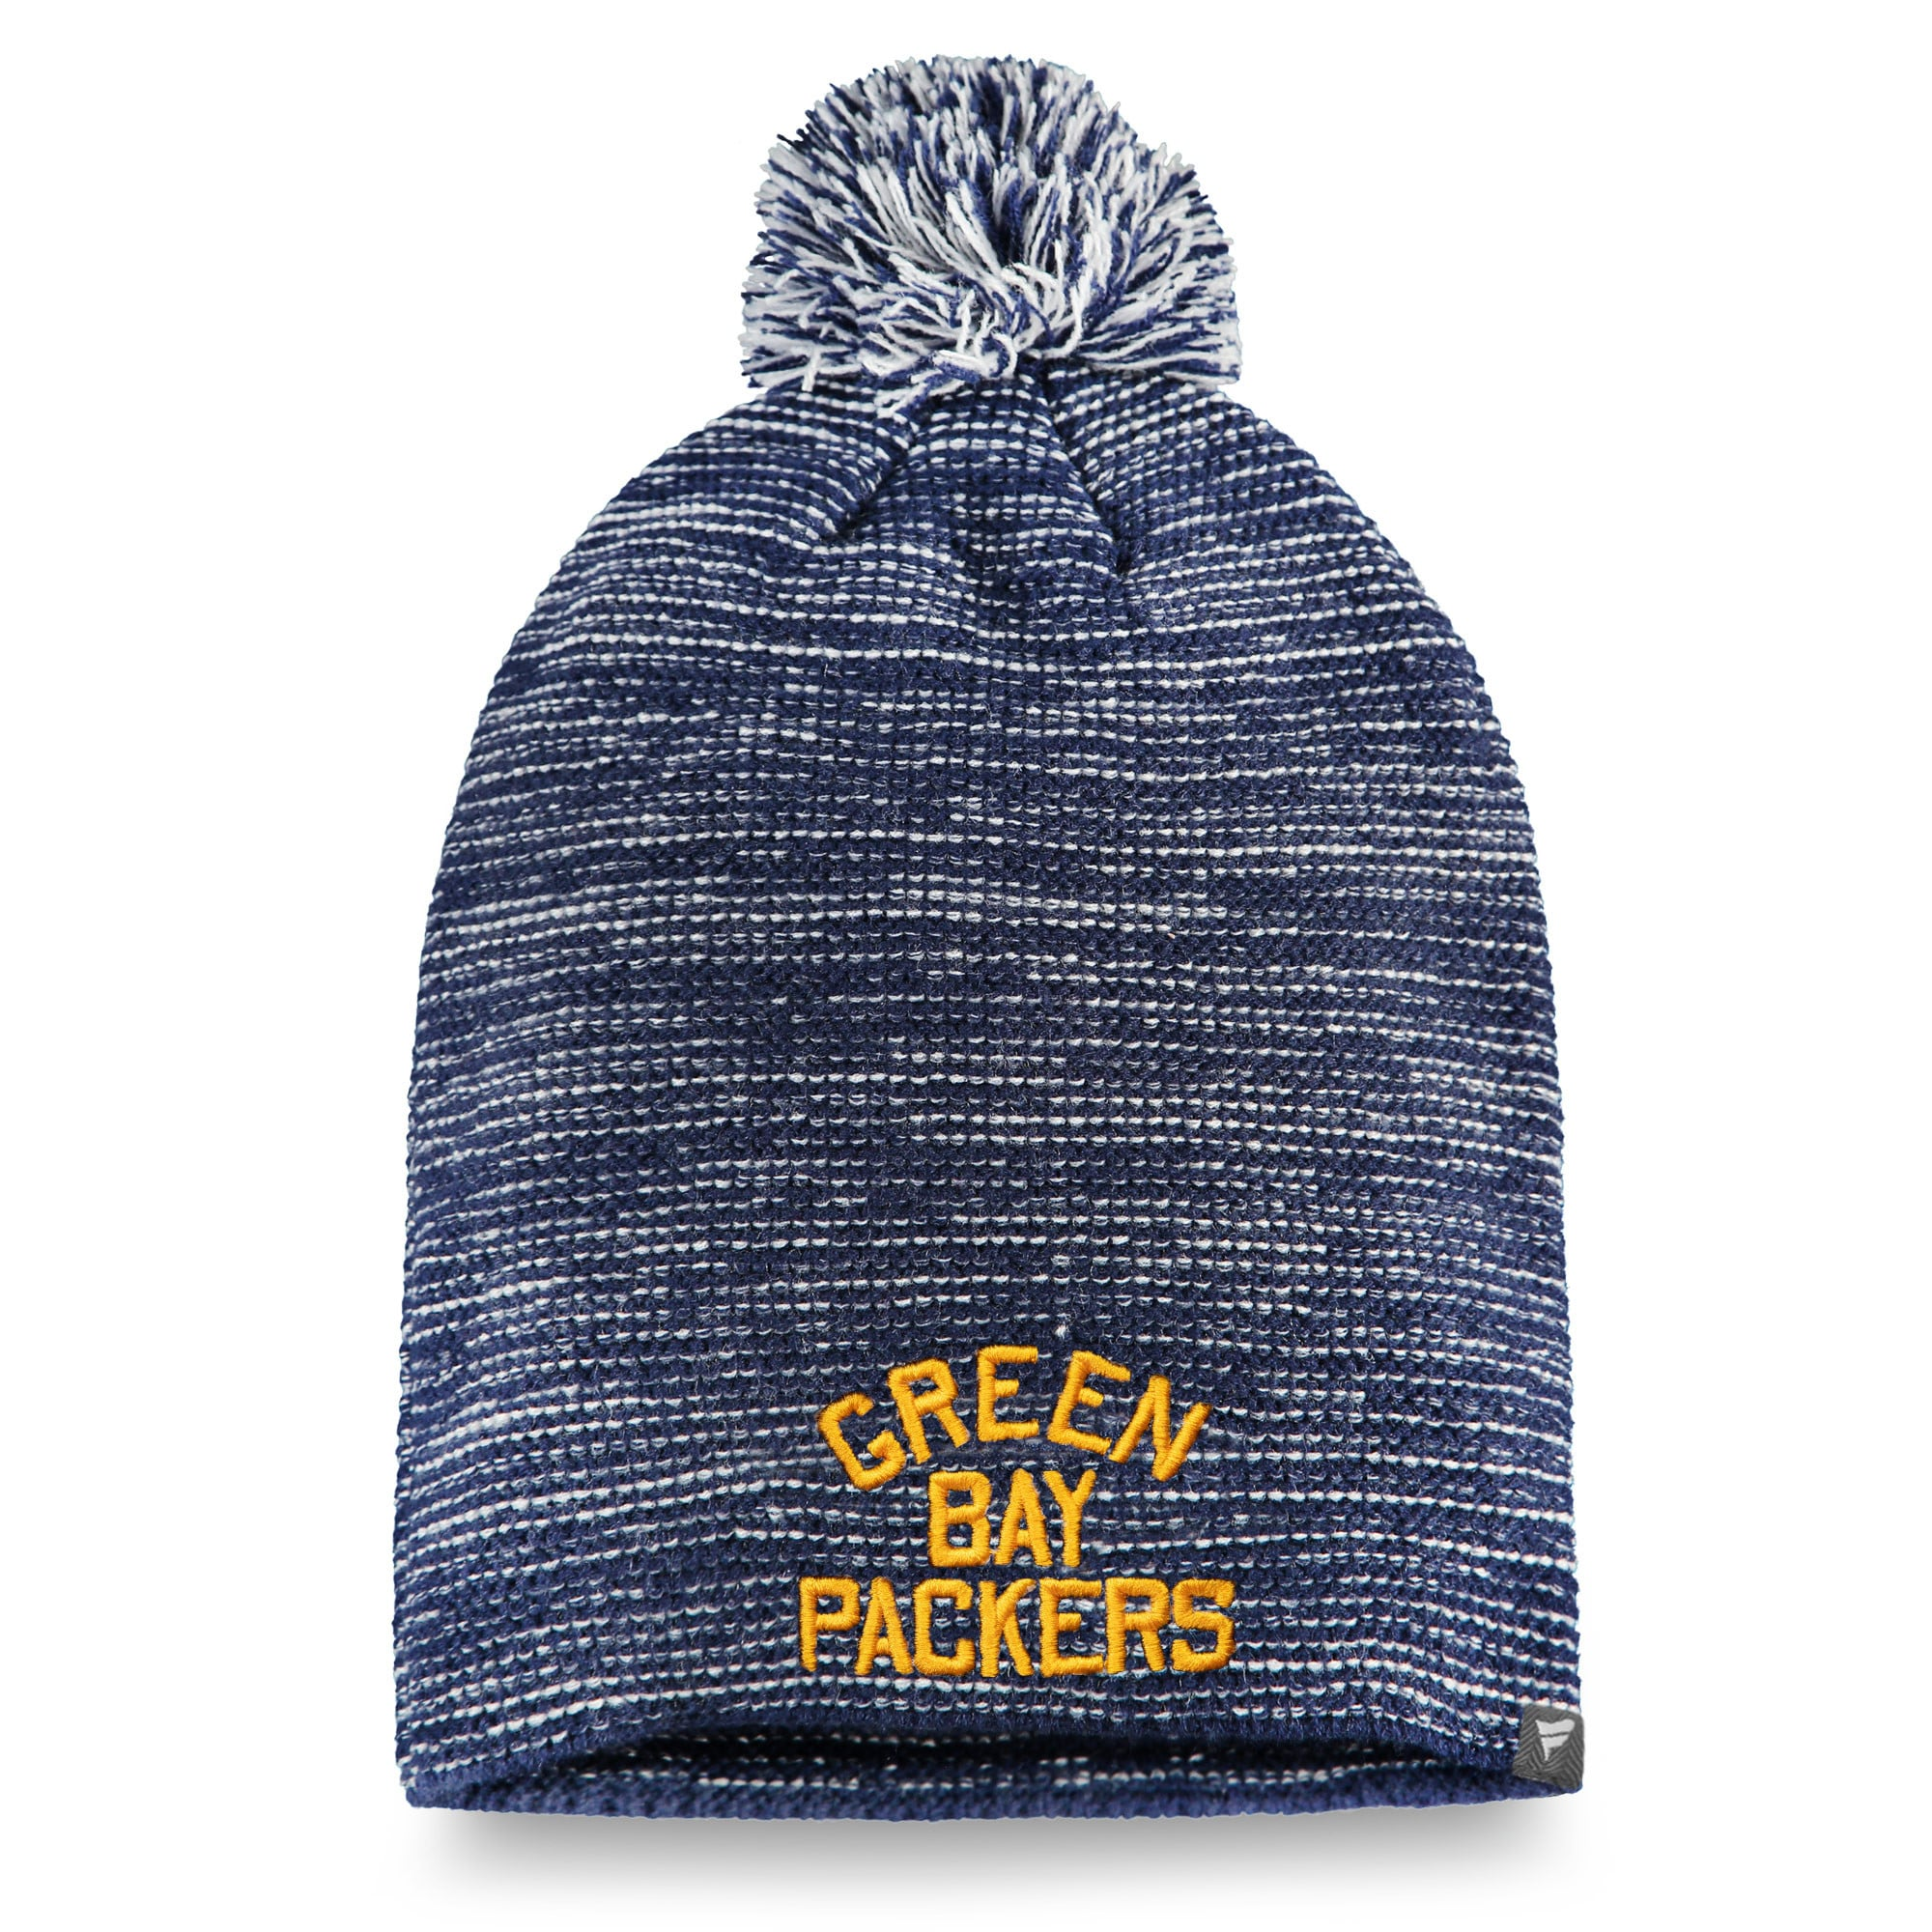 Green Bay Packers NFL Pro Line by Fanatics Branded Women's Throwback Versalux Knit Beanie - Navy